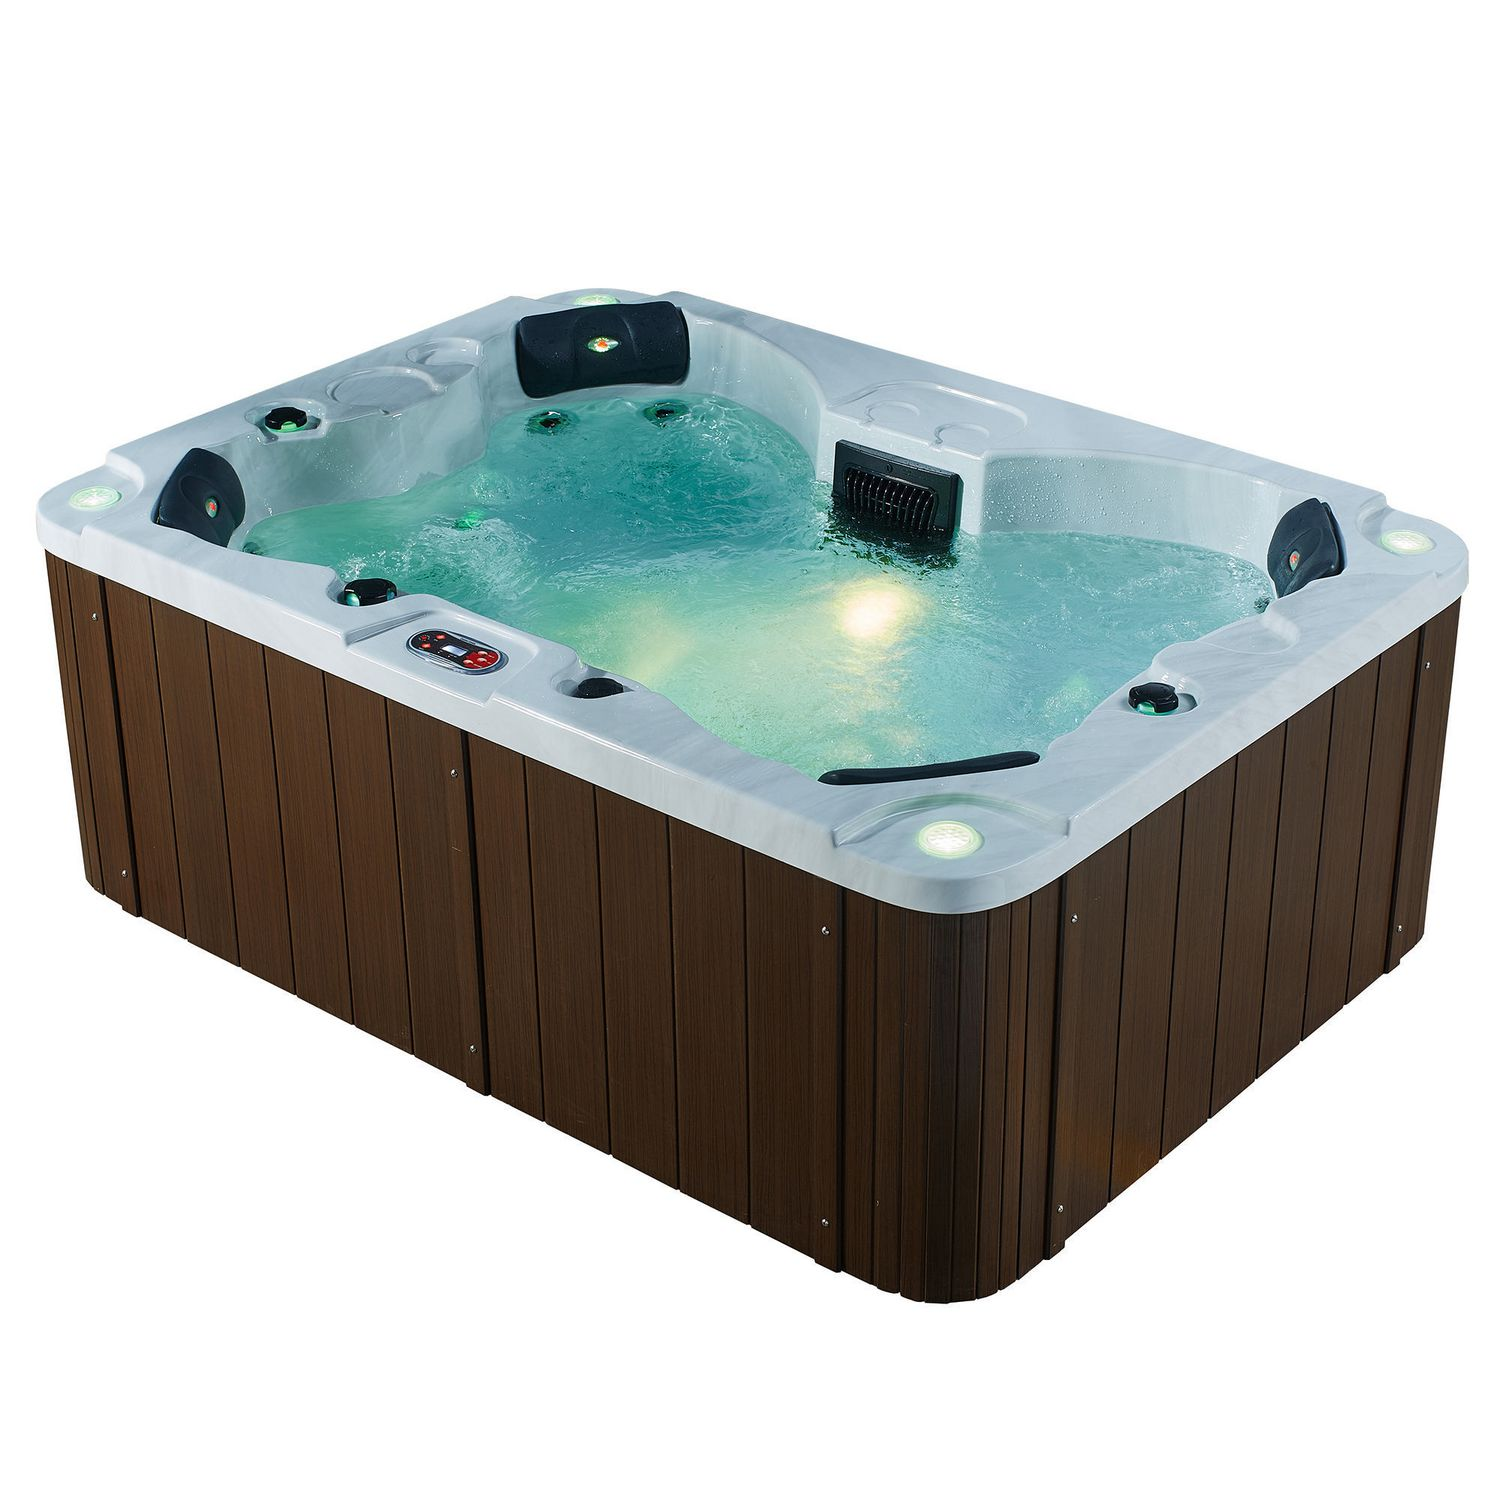 prix jacuzzi 4 places spa jacuzzi gonflable 6 places puis. Black Bedroom Furniture Sets. Home Design Ideas